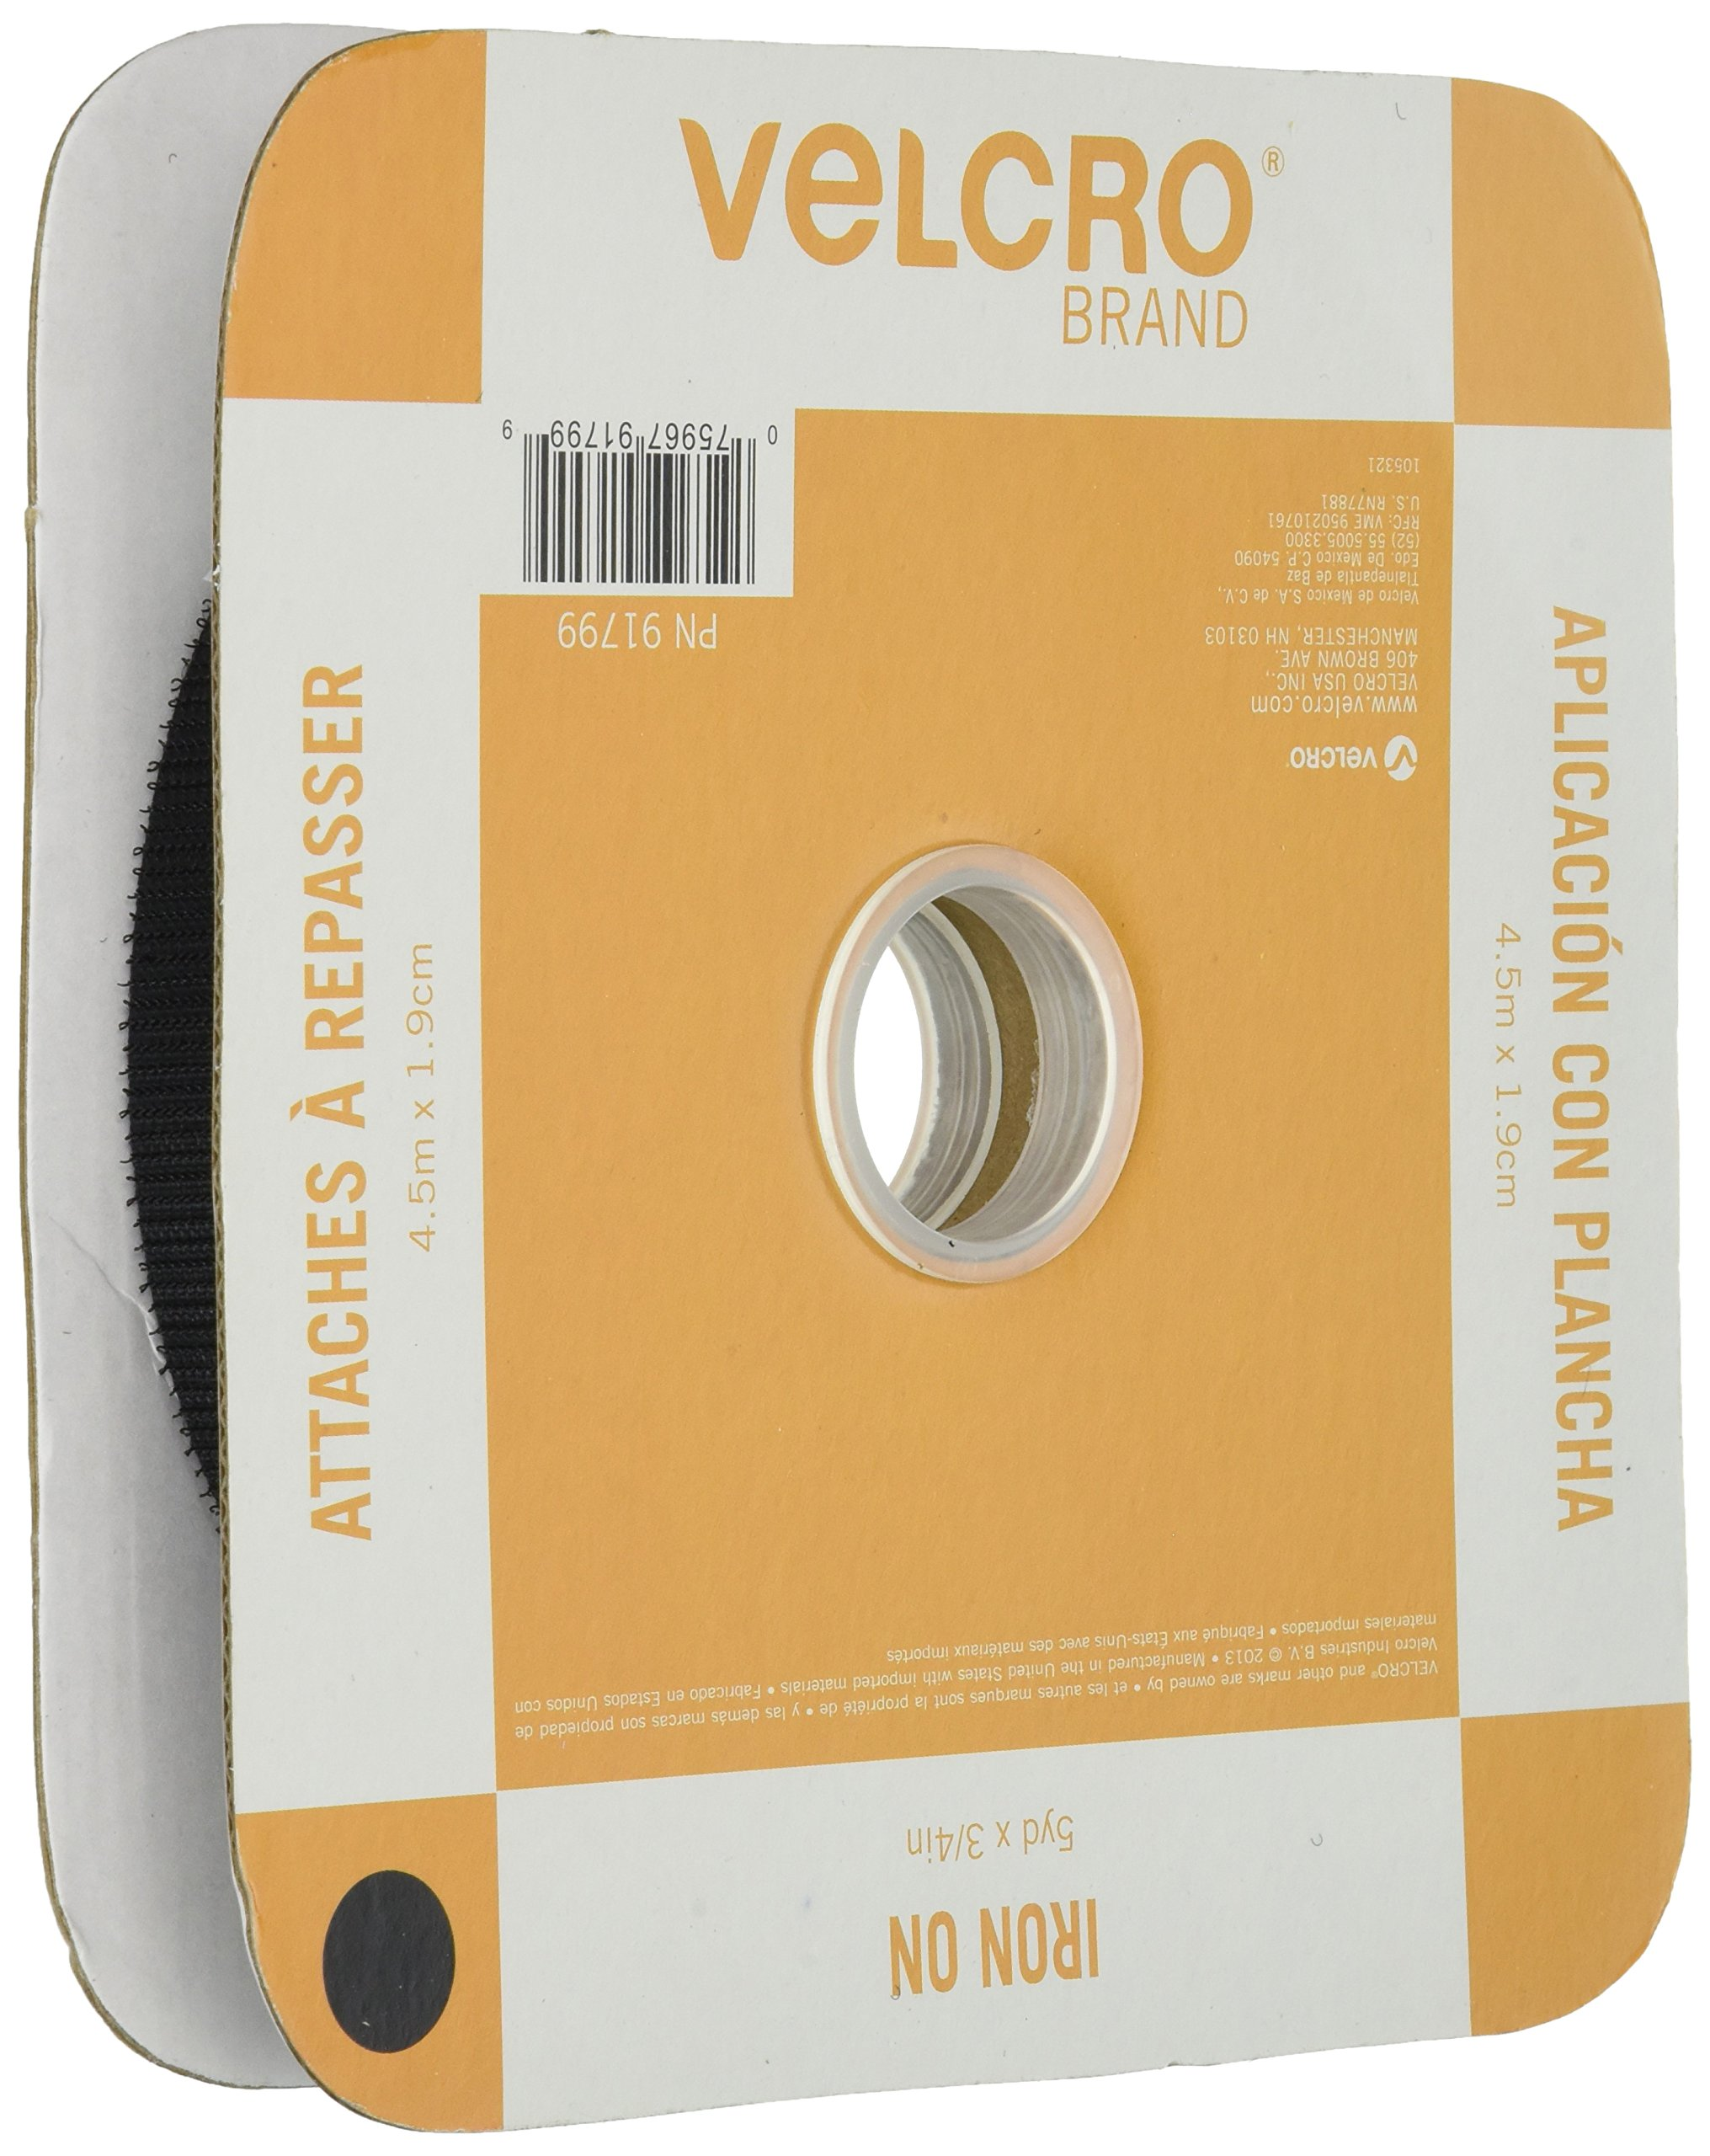 VELCRO(R) BRAND FASTENERS VELCRO(R) Brand Fabric Fusion Tape, 3/4-Inch by 5-Yard, Black by VELCRO Brand